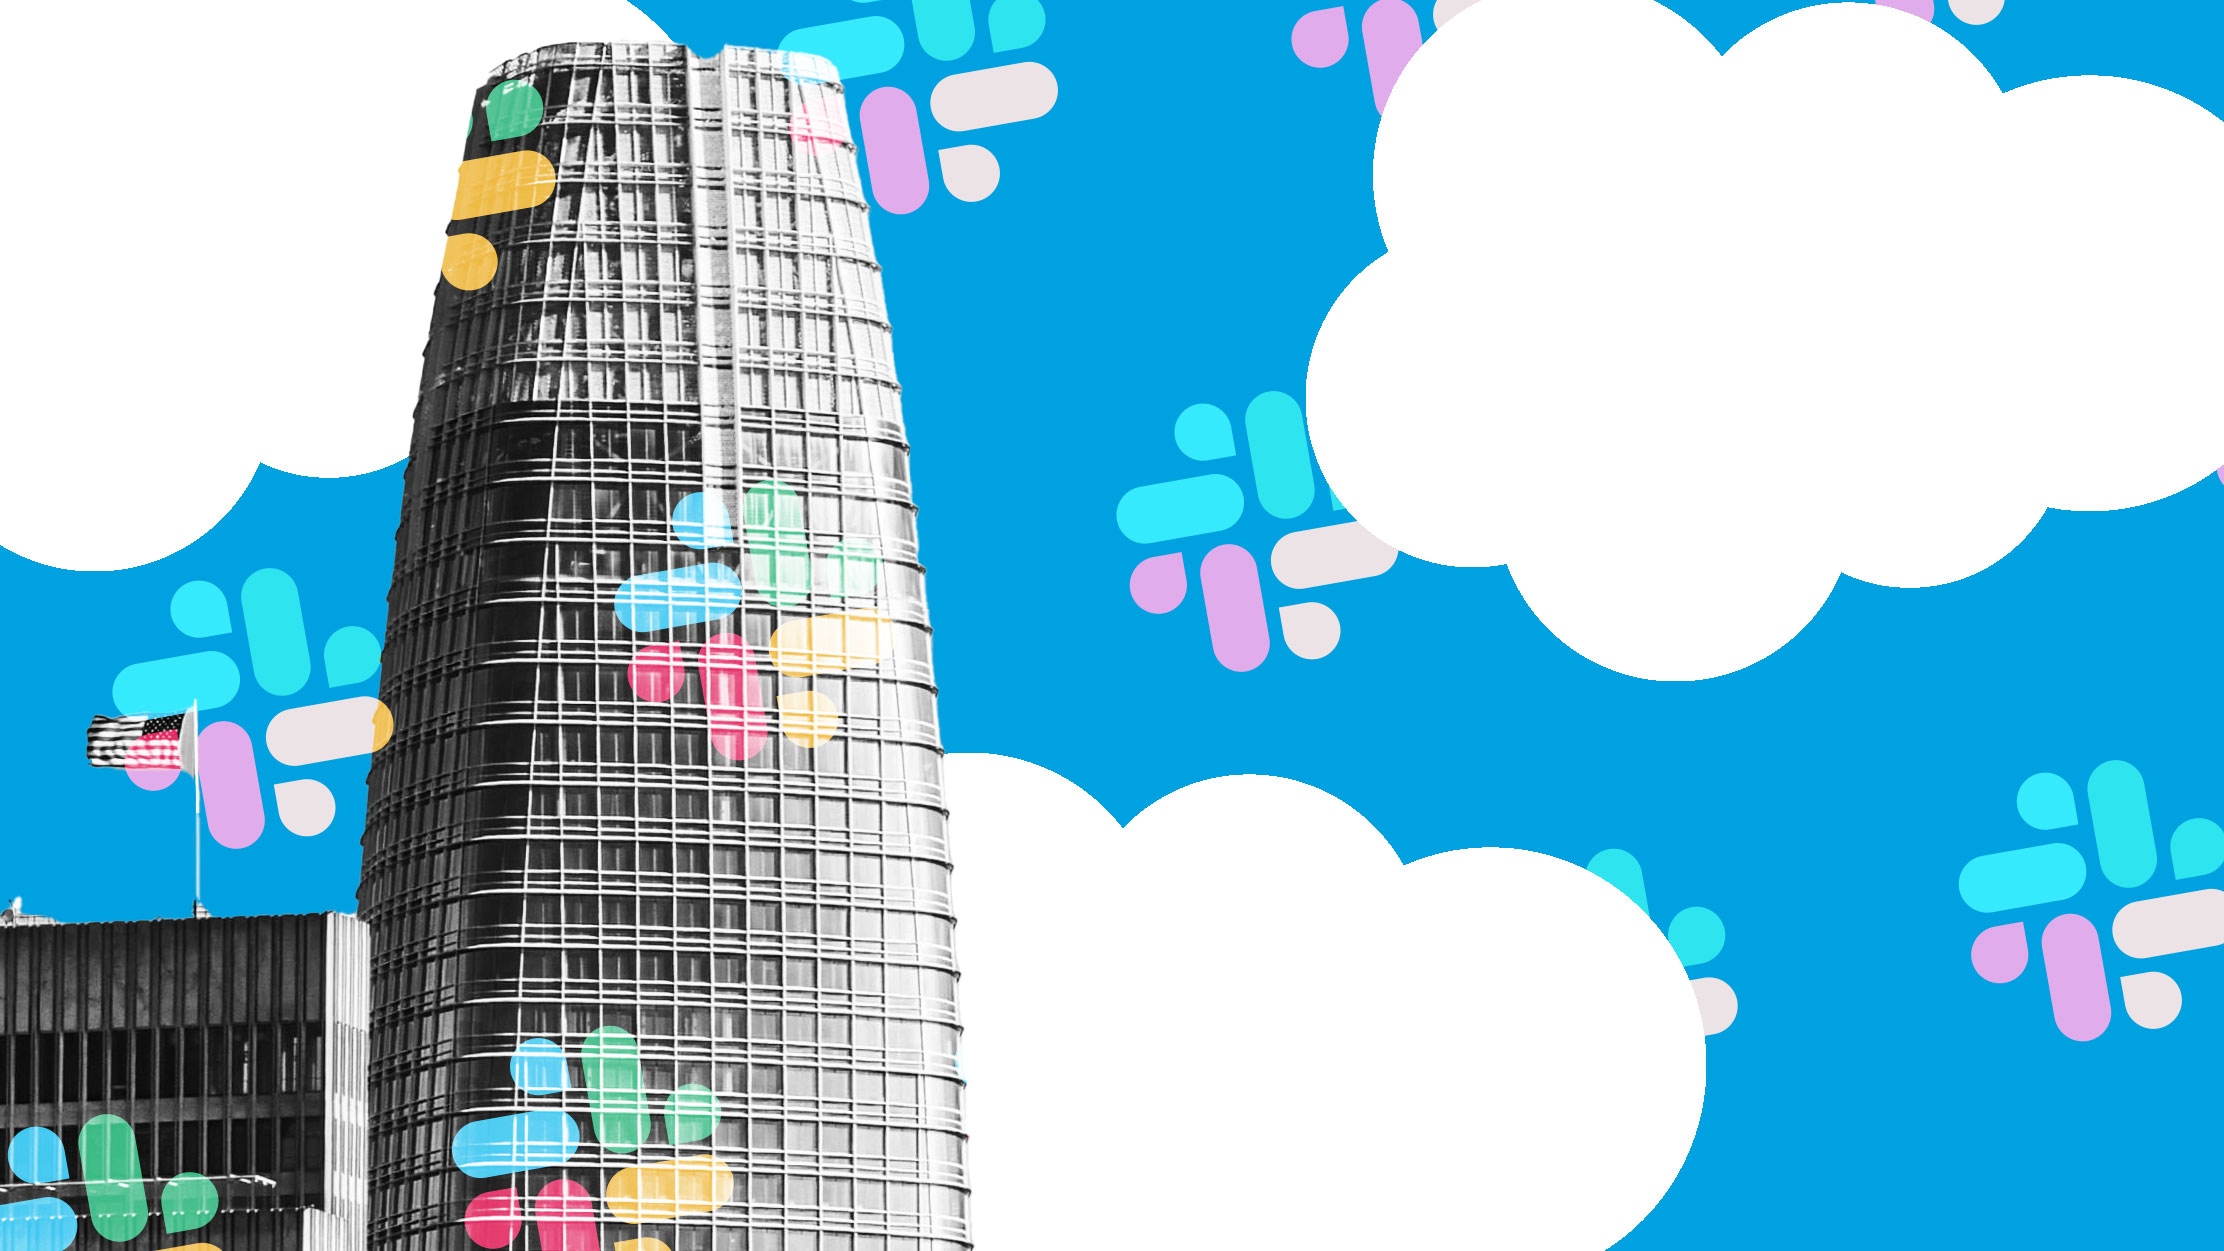 photo illustration of salesforce tower with white clouds and slack logo pattern